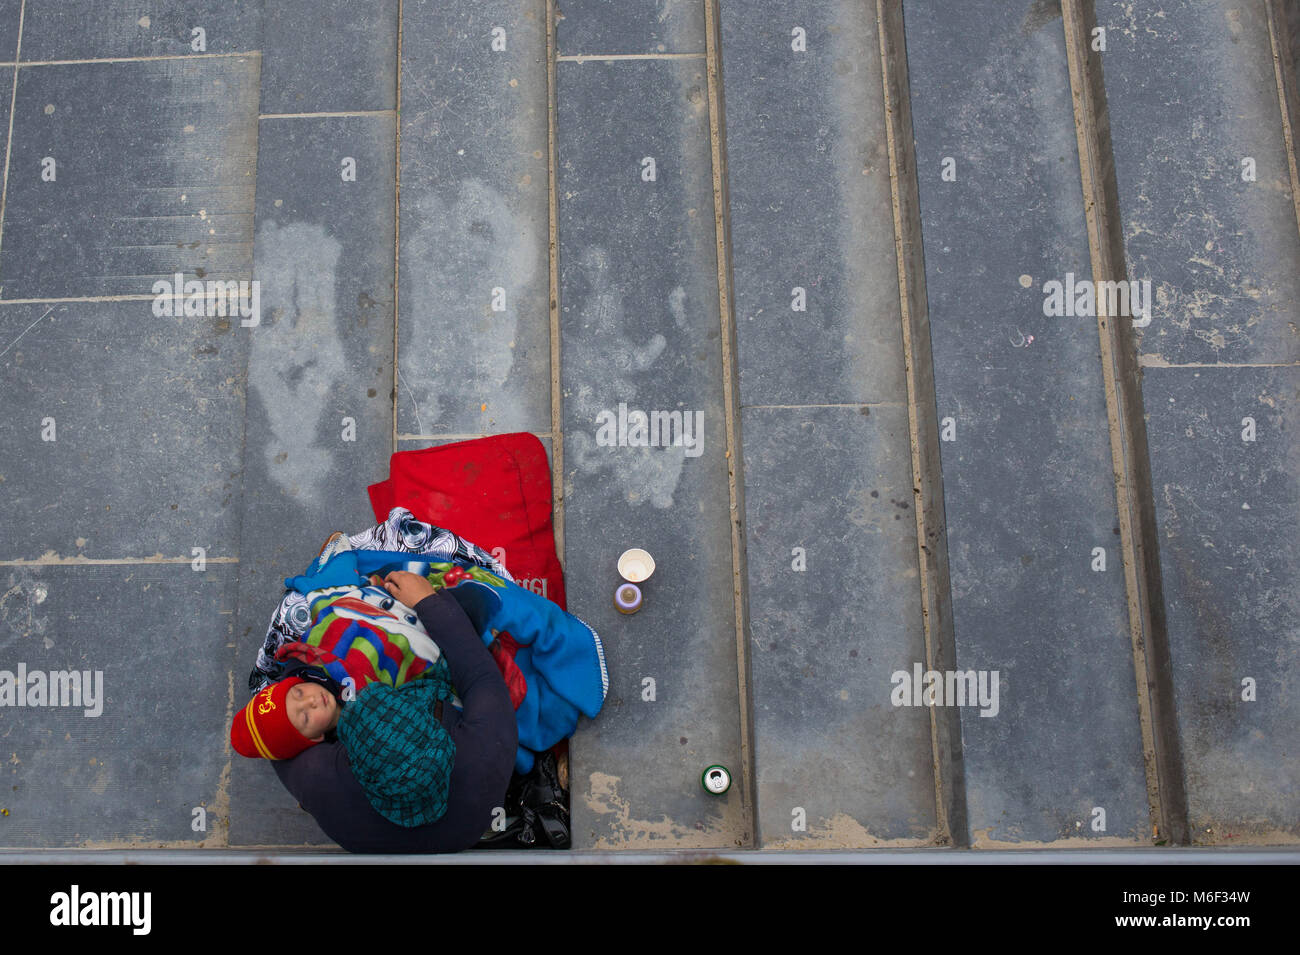 Bruxelles, mother with child begging. Belgium. - Stock Image